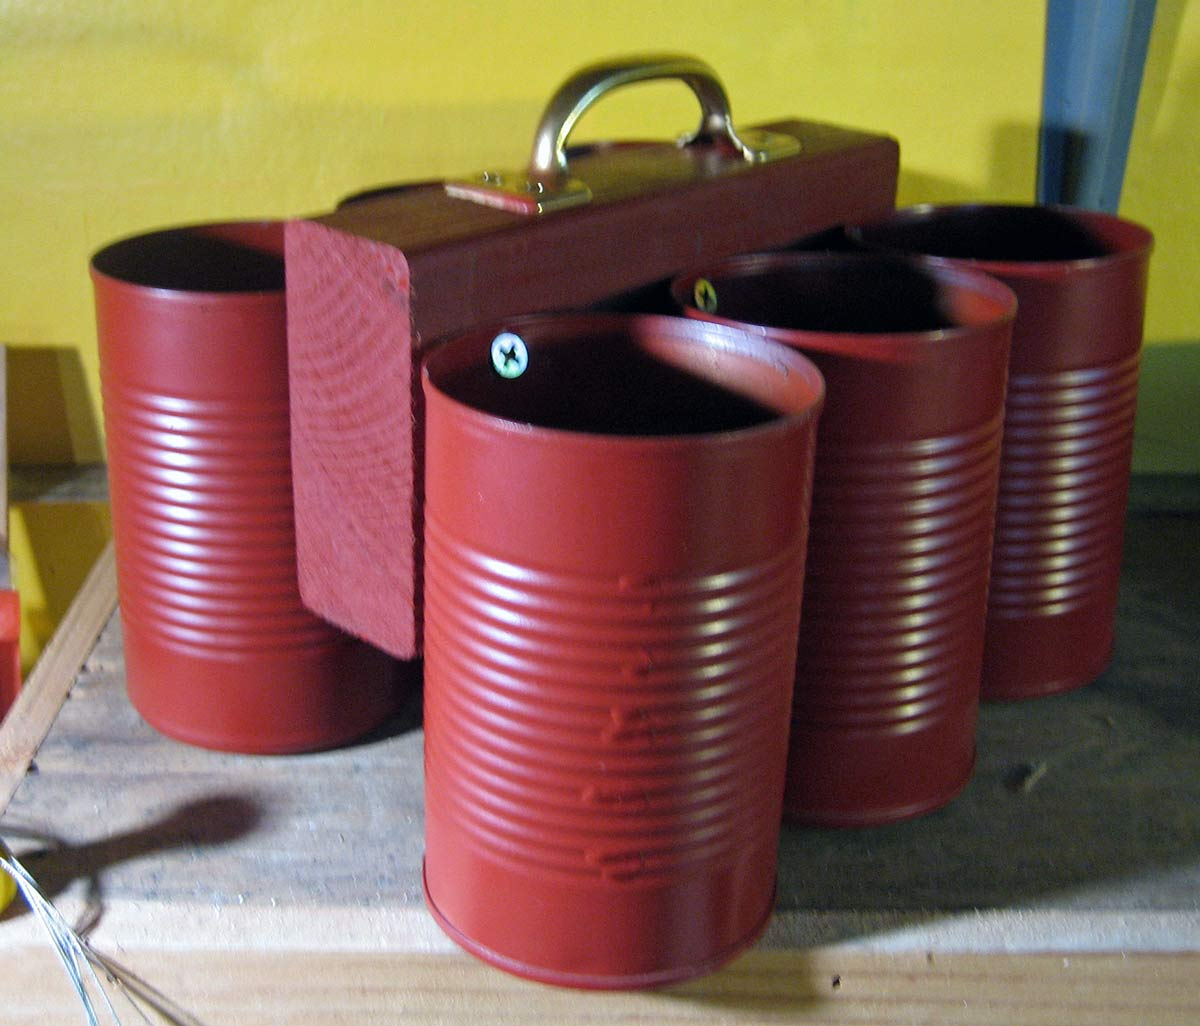 Homemade Tool Caddy of soup cans, handle and wood